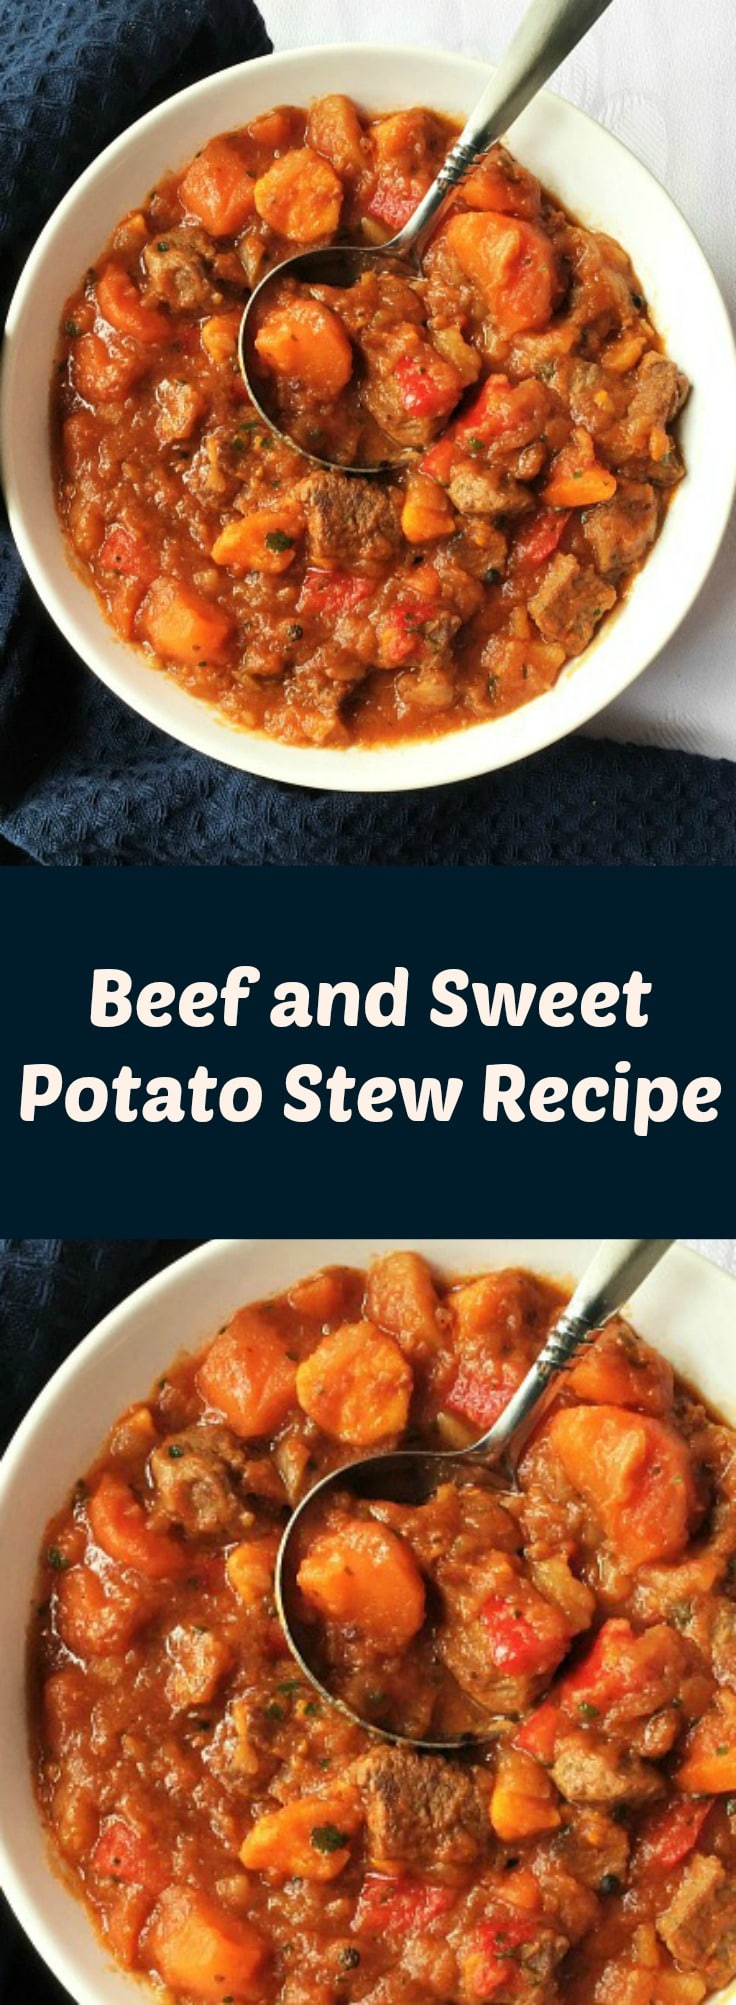 Beef and Sweet Potato Stew Recipe